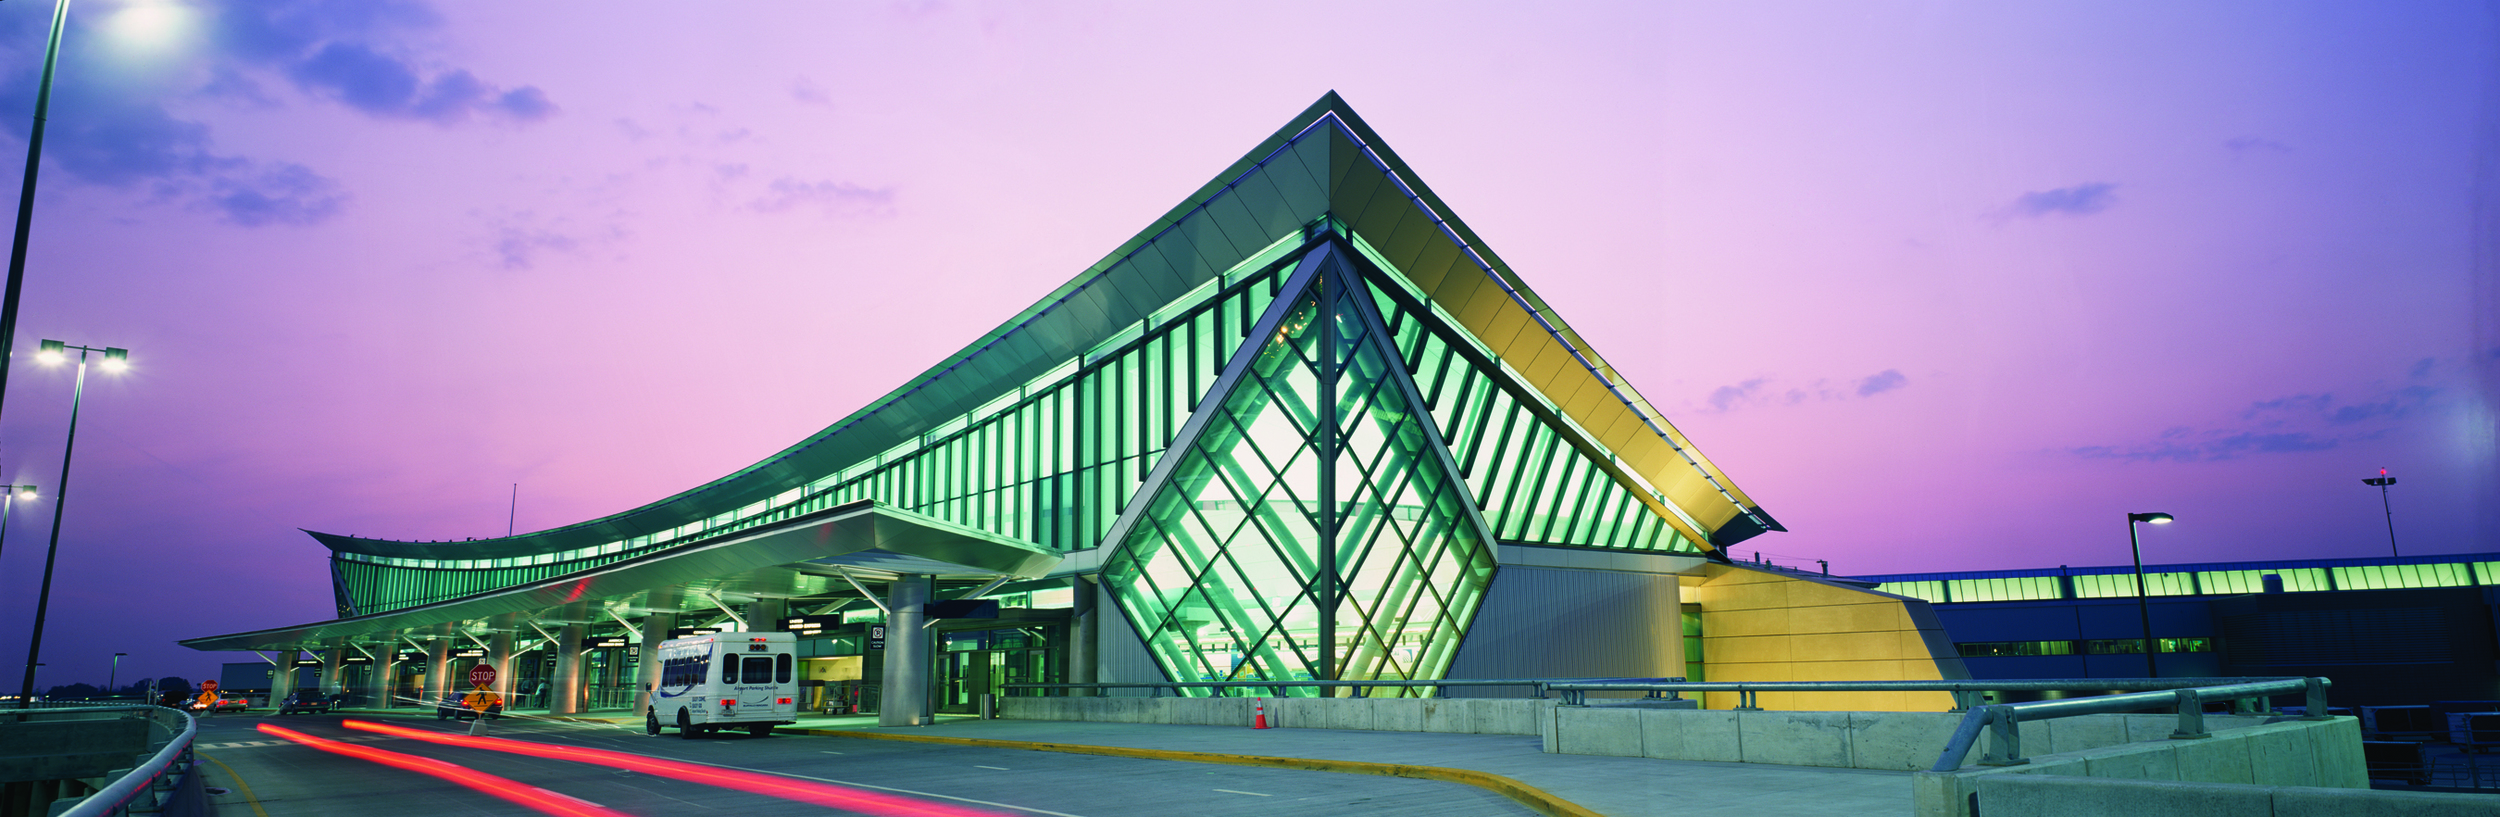 PUNCH-PR-Toronto_Travel_Buffalo Niagara Airport